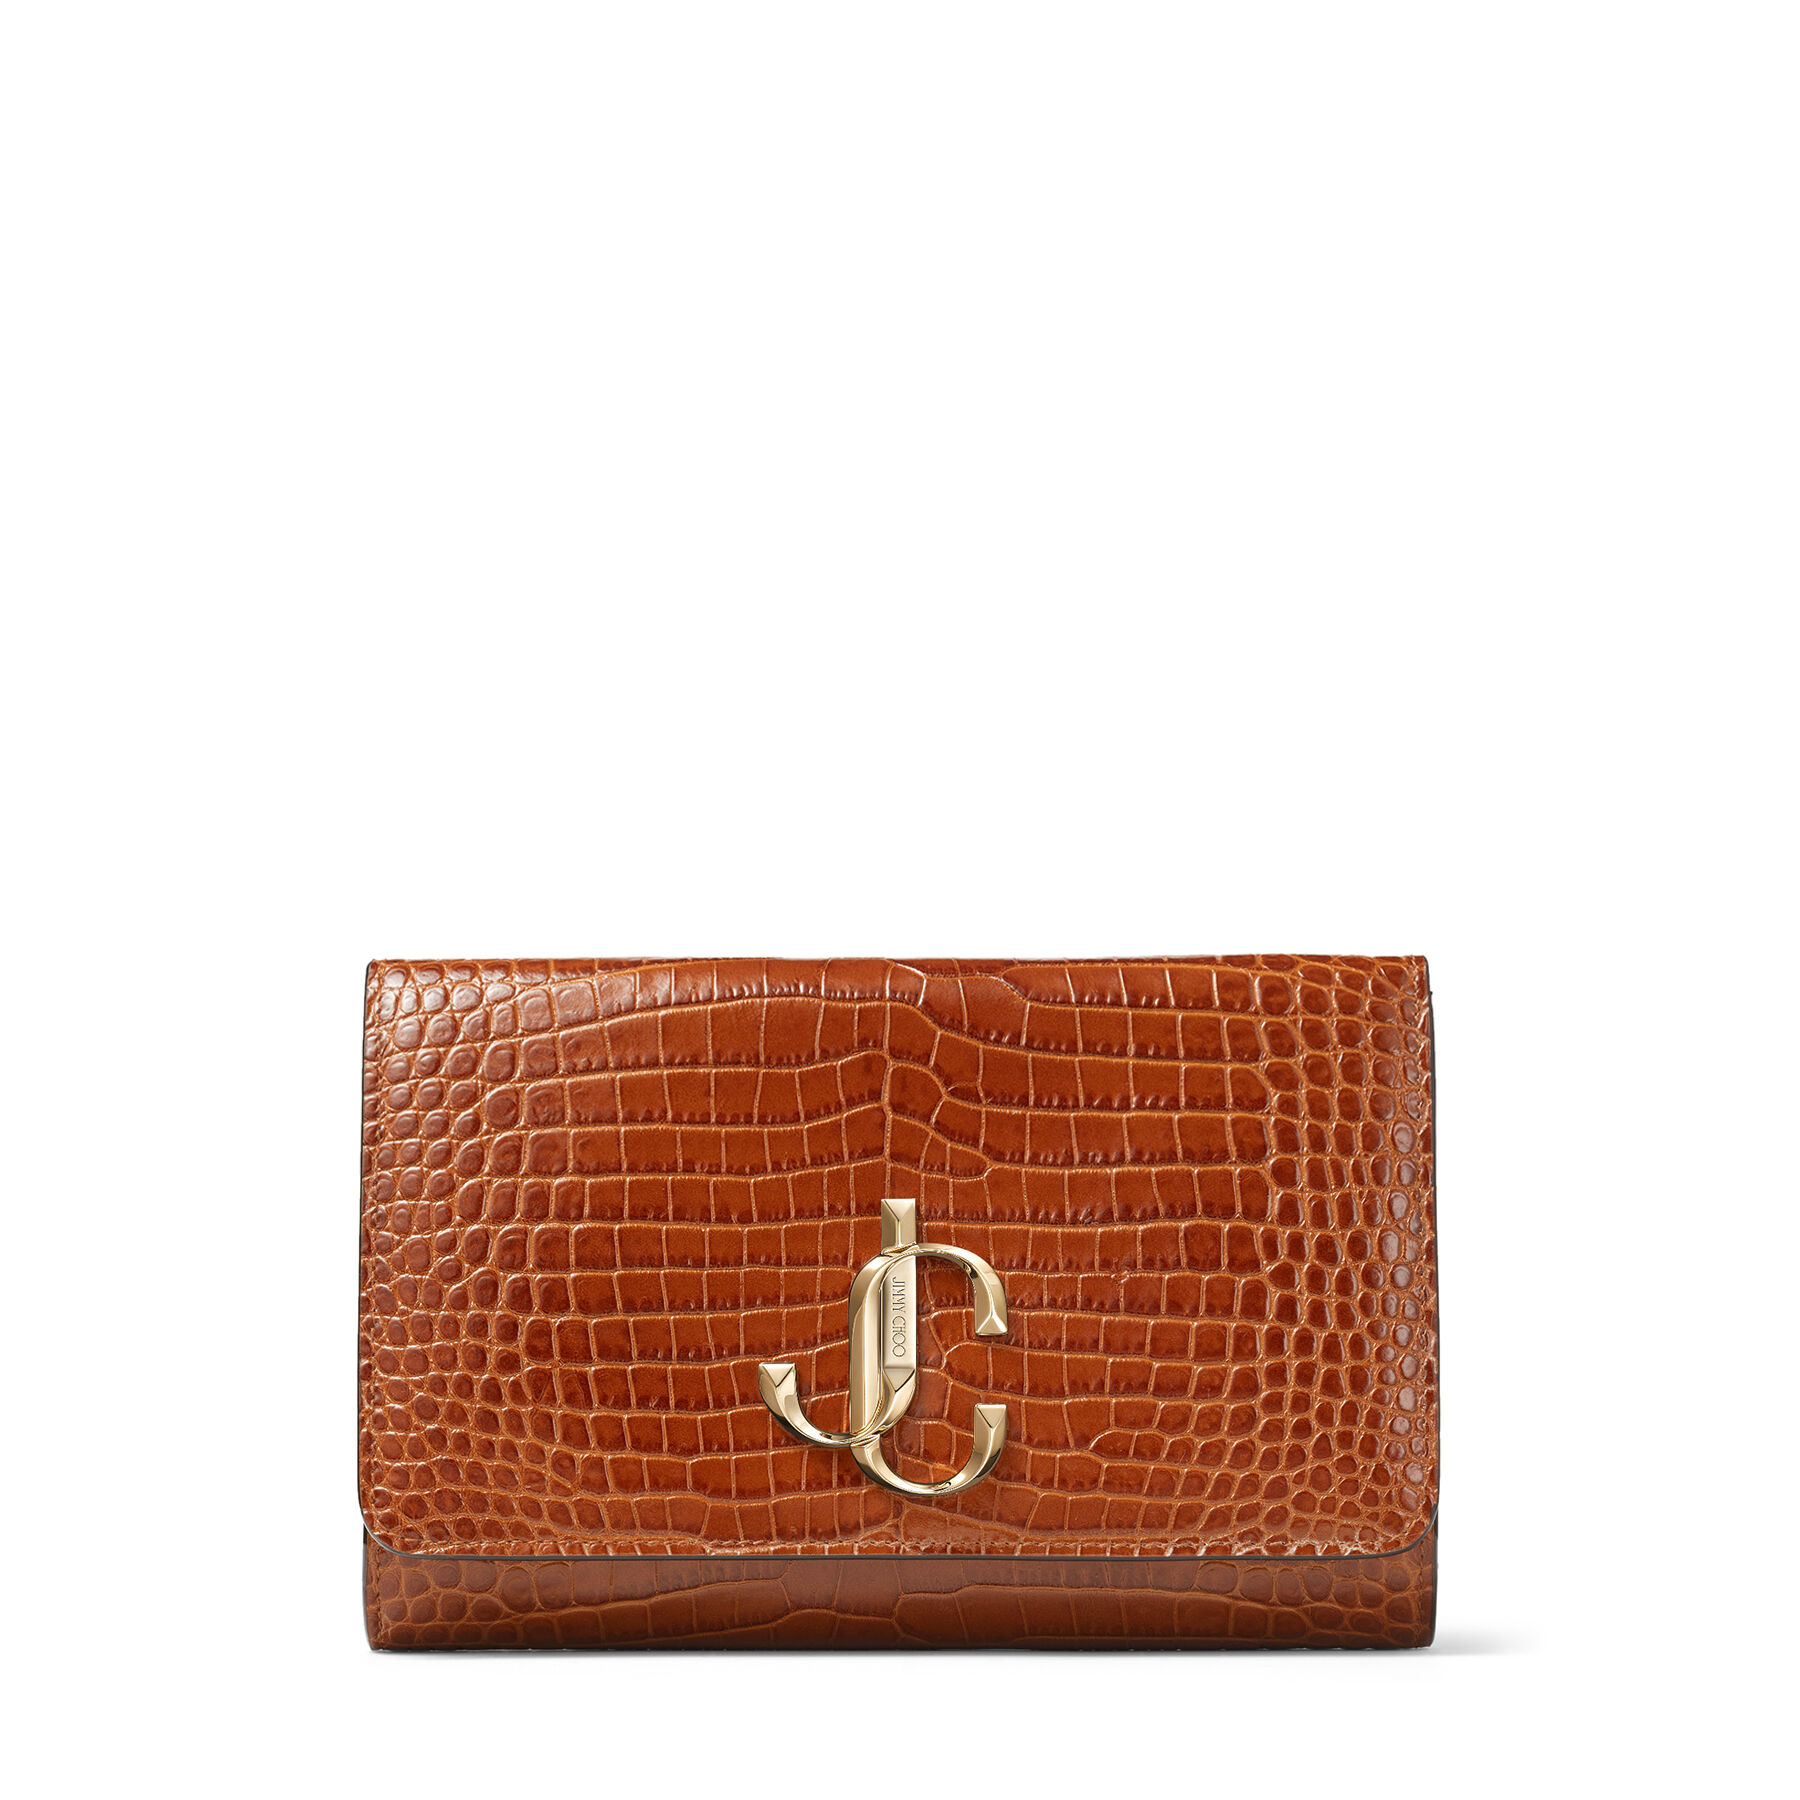 Cuoio Croc Embossed Leather Clutch Bag with JC logo